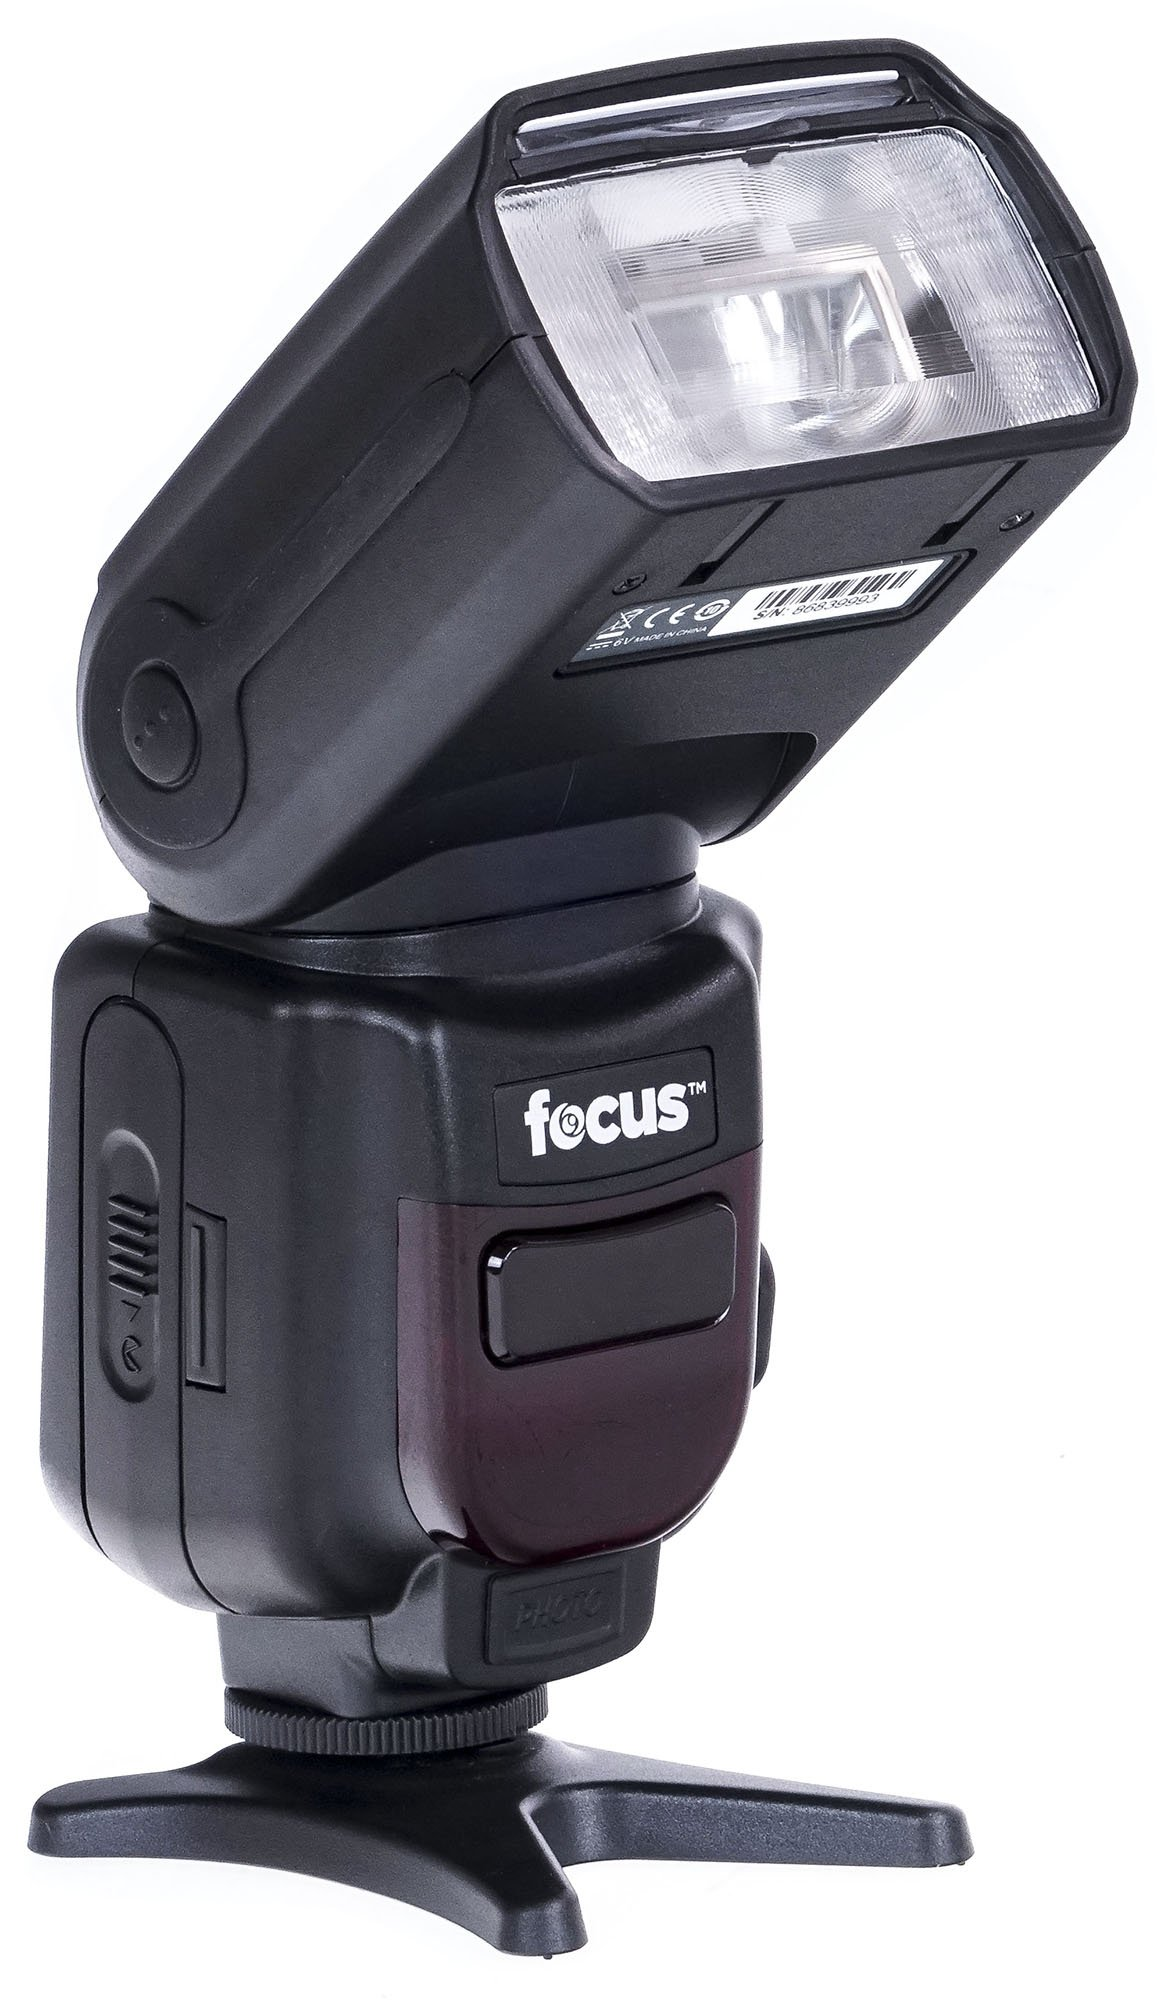 Focus Camera Professional Zoom TTL Speedlite Flash - with Built-in Transmitter/Receiver for Canon and Nikon DSLR Cameras by Focus Camera